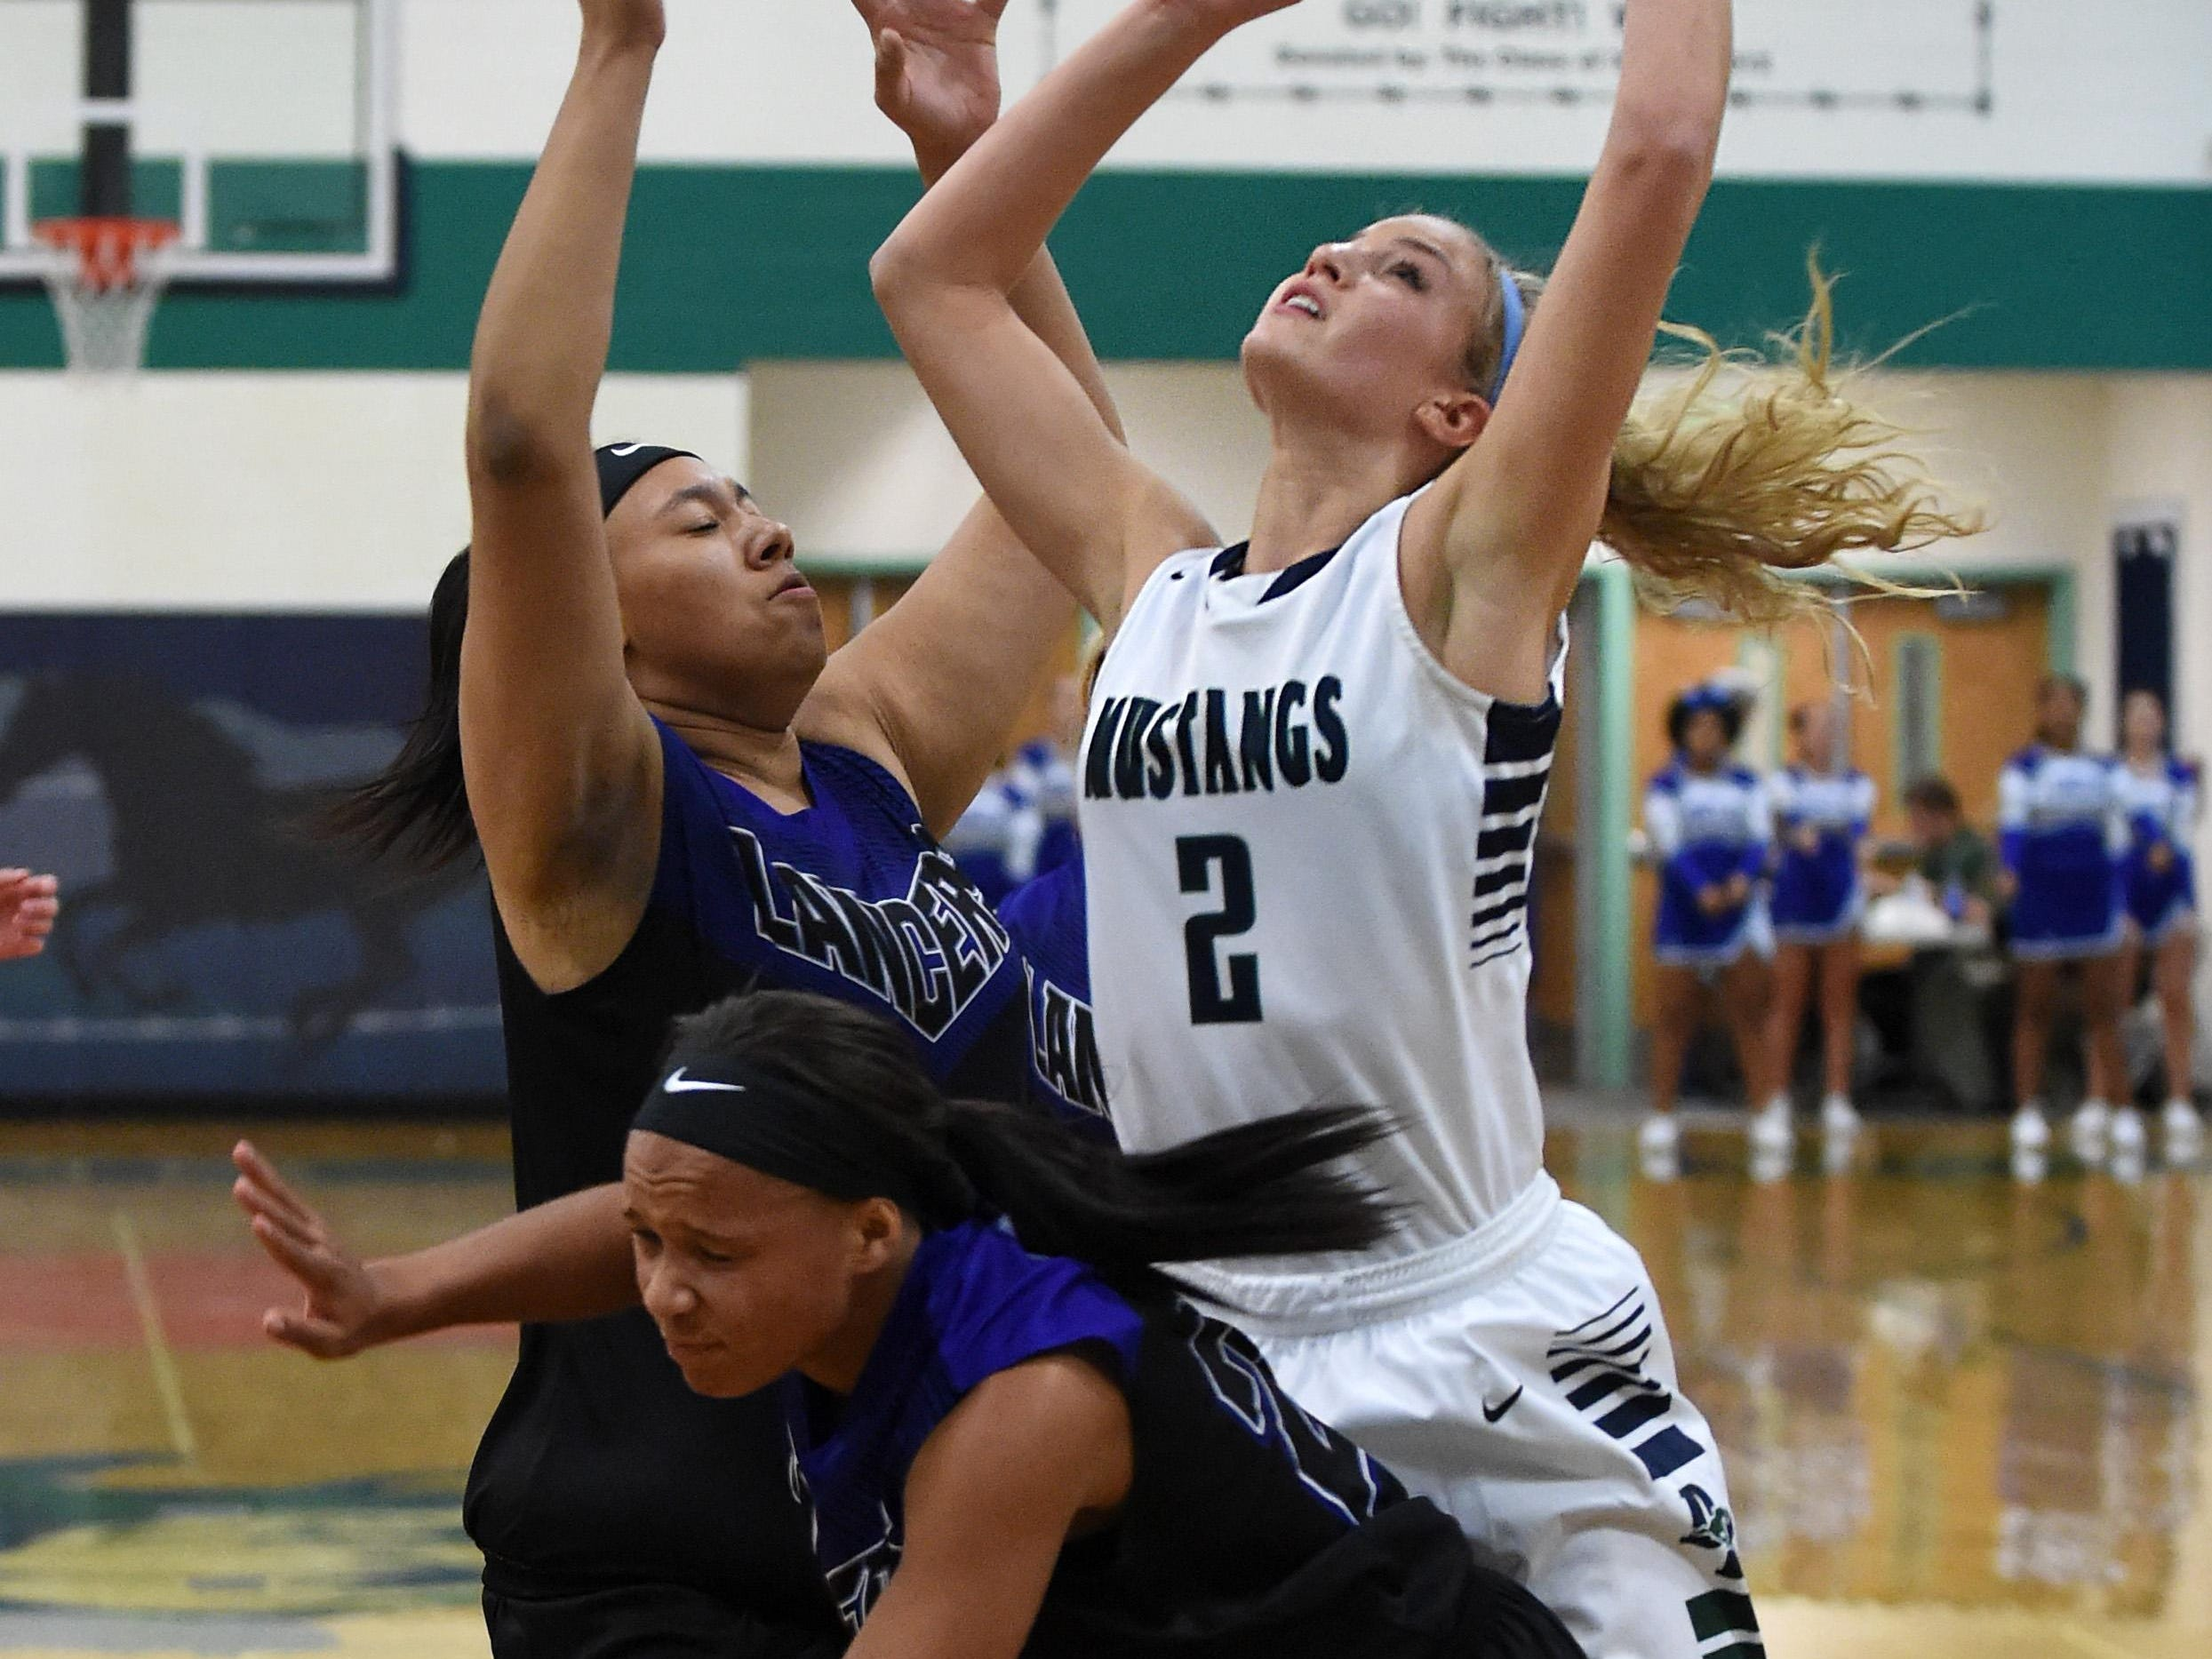 Damonte's Meagan Carlson pulls down the rebound against McQueen's Renesha Henderson, left, and Holly White, front, during Tuesday's game at Damonte Ranch High School.